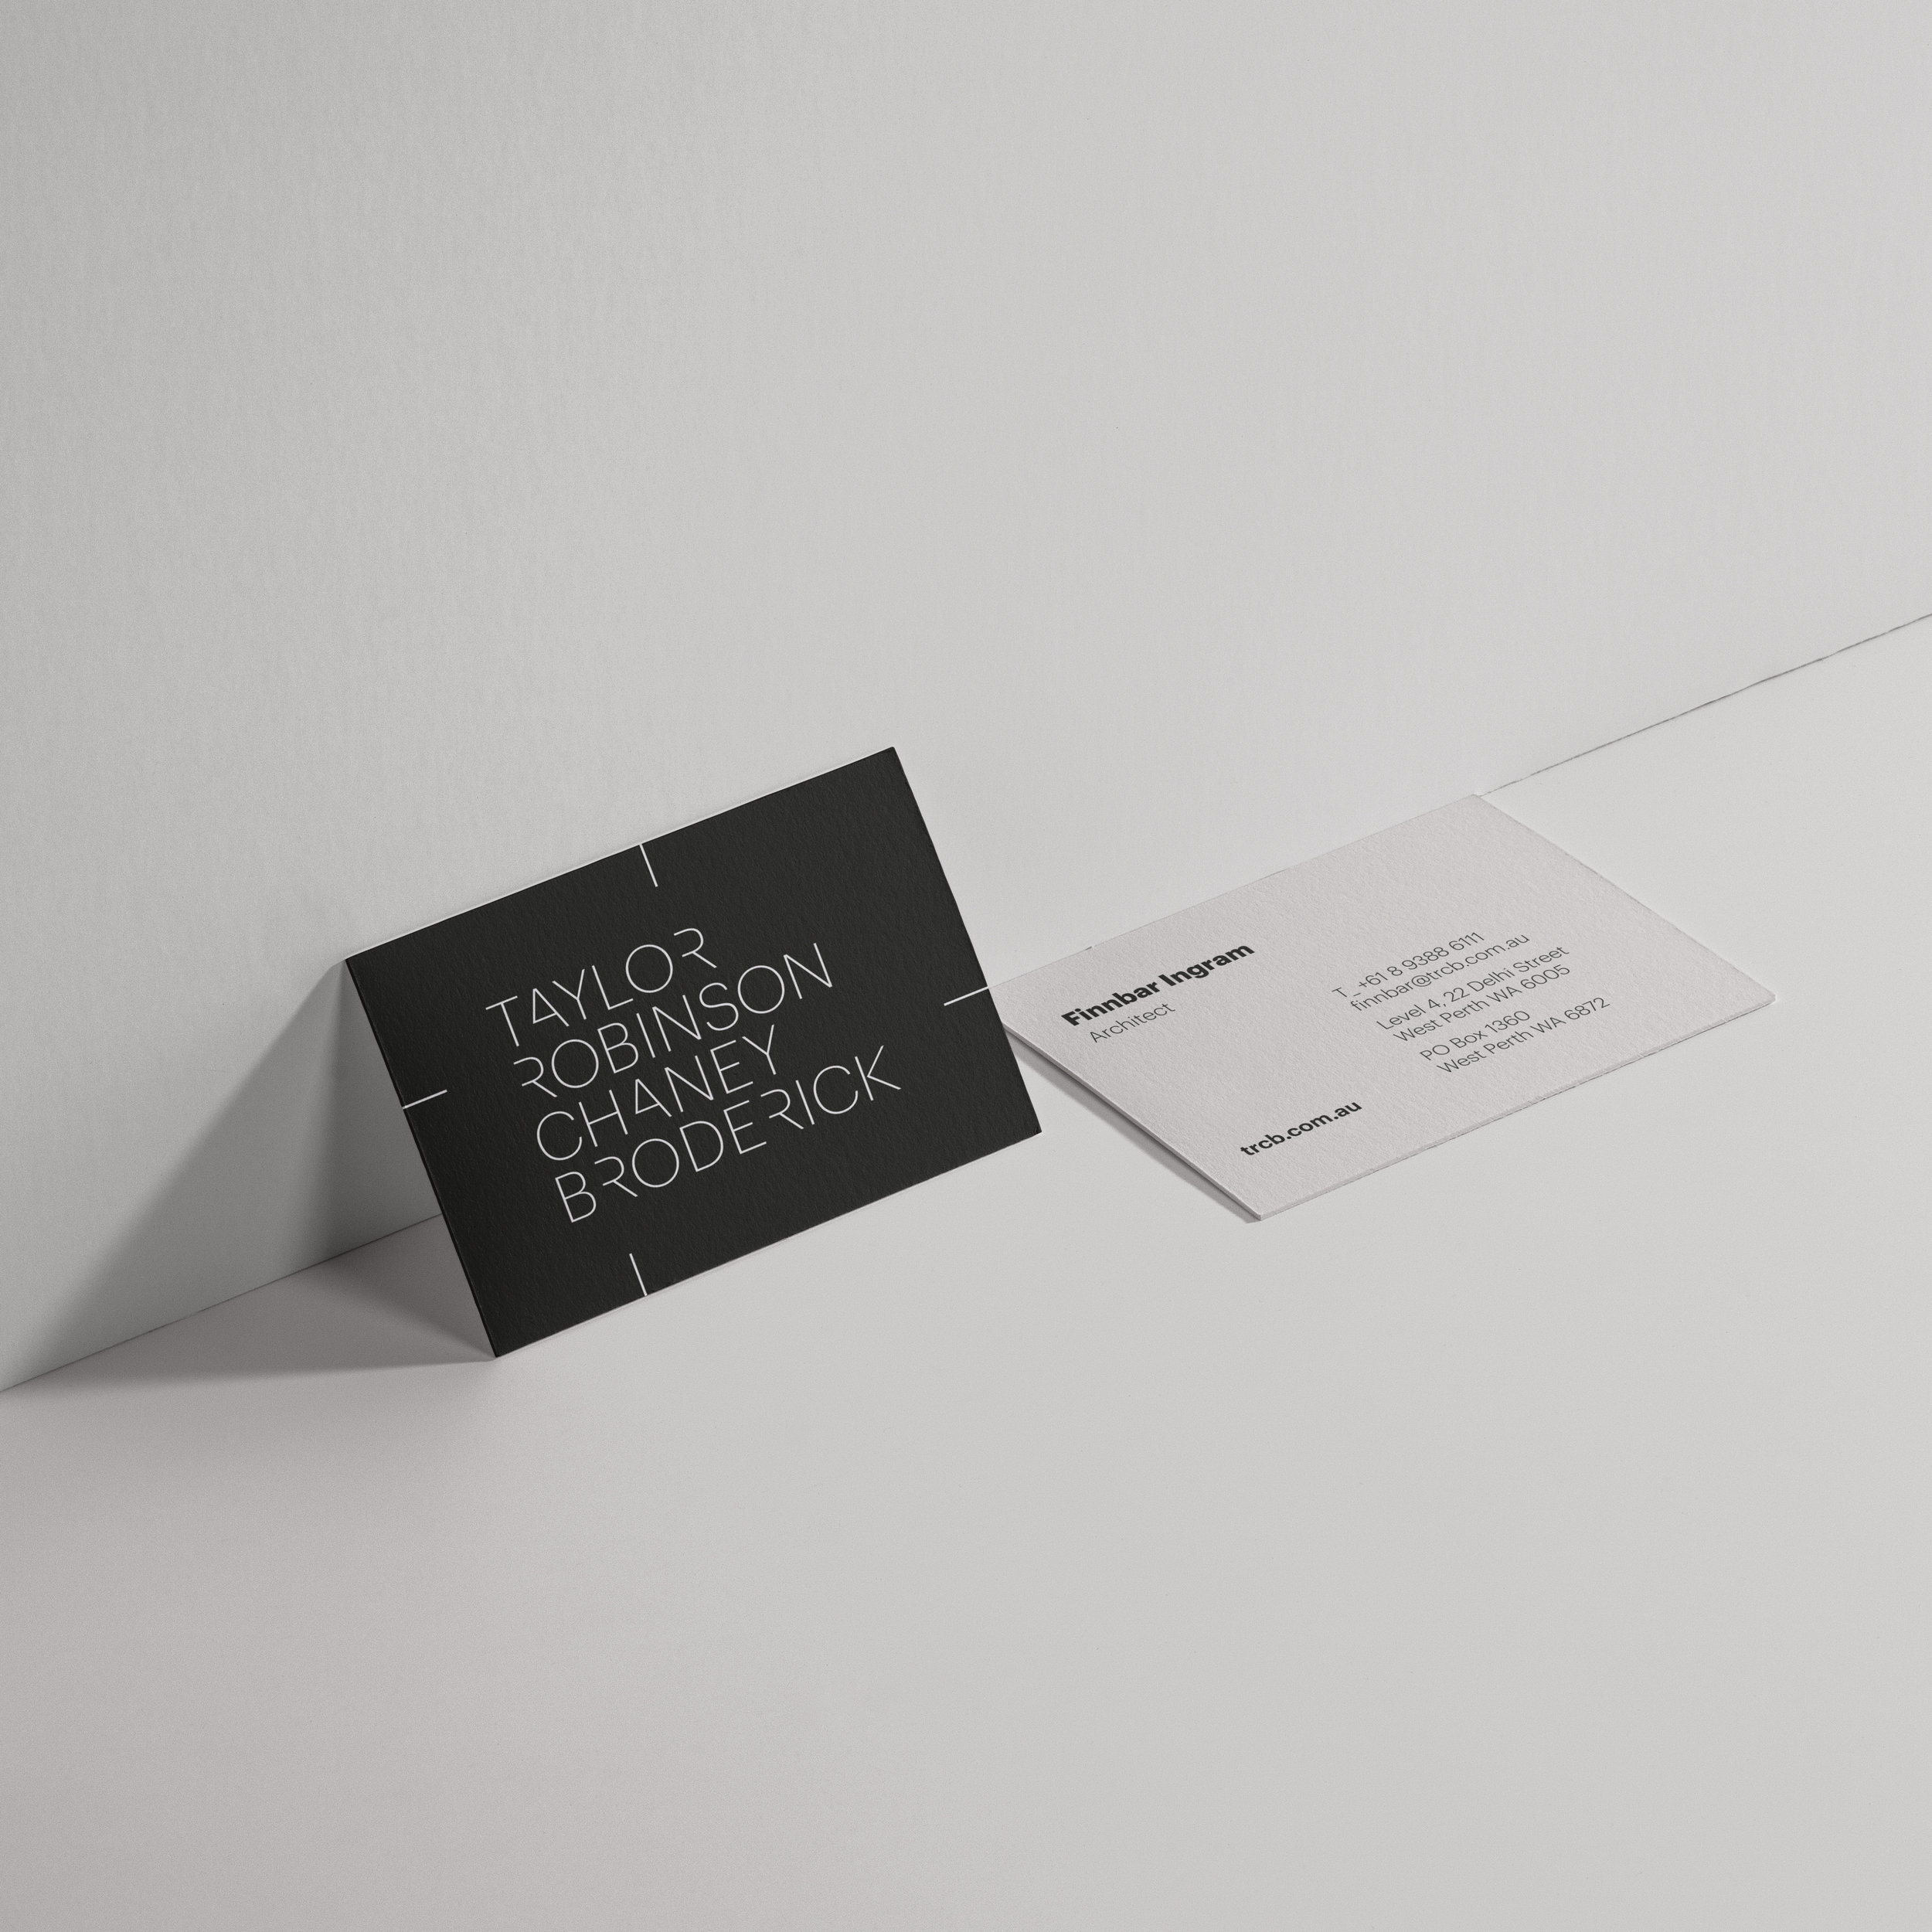 Taylor Robinson Chaney Broderick – Business Cards